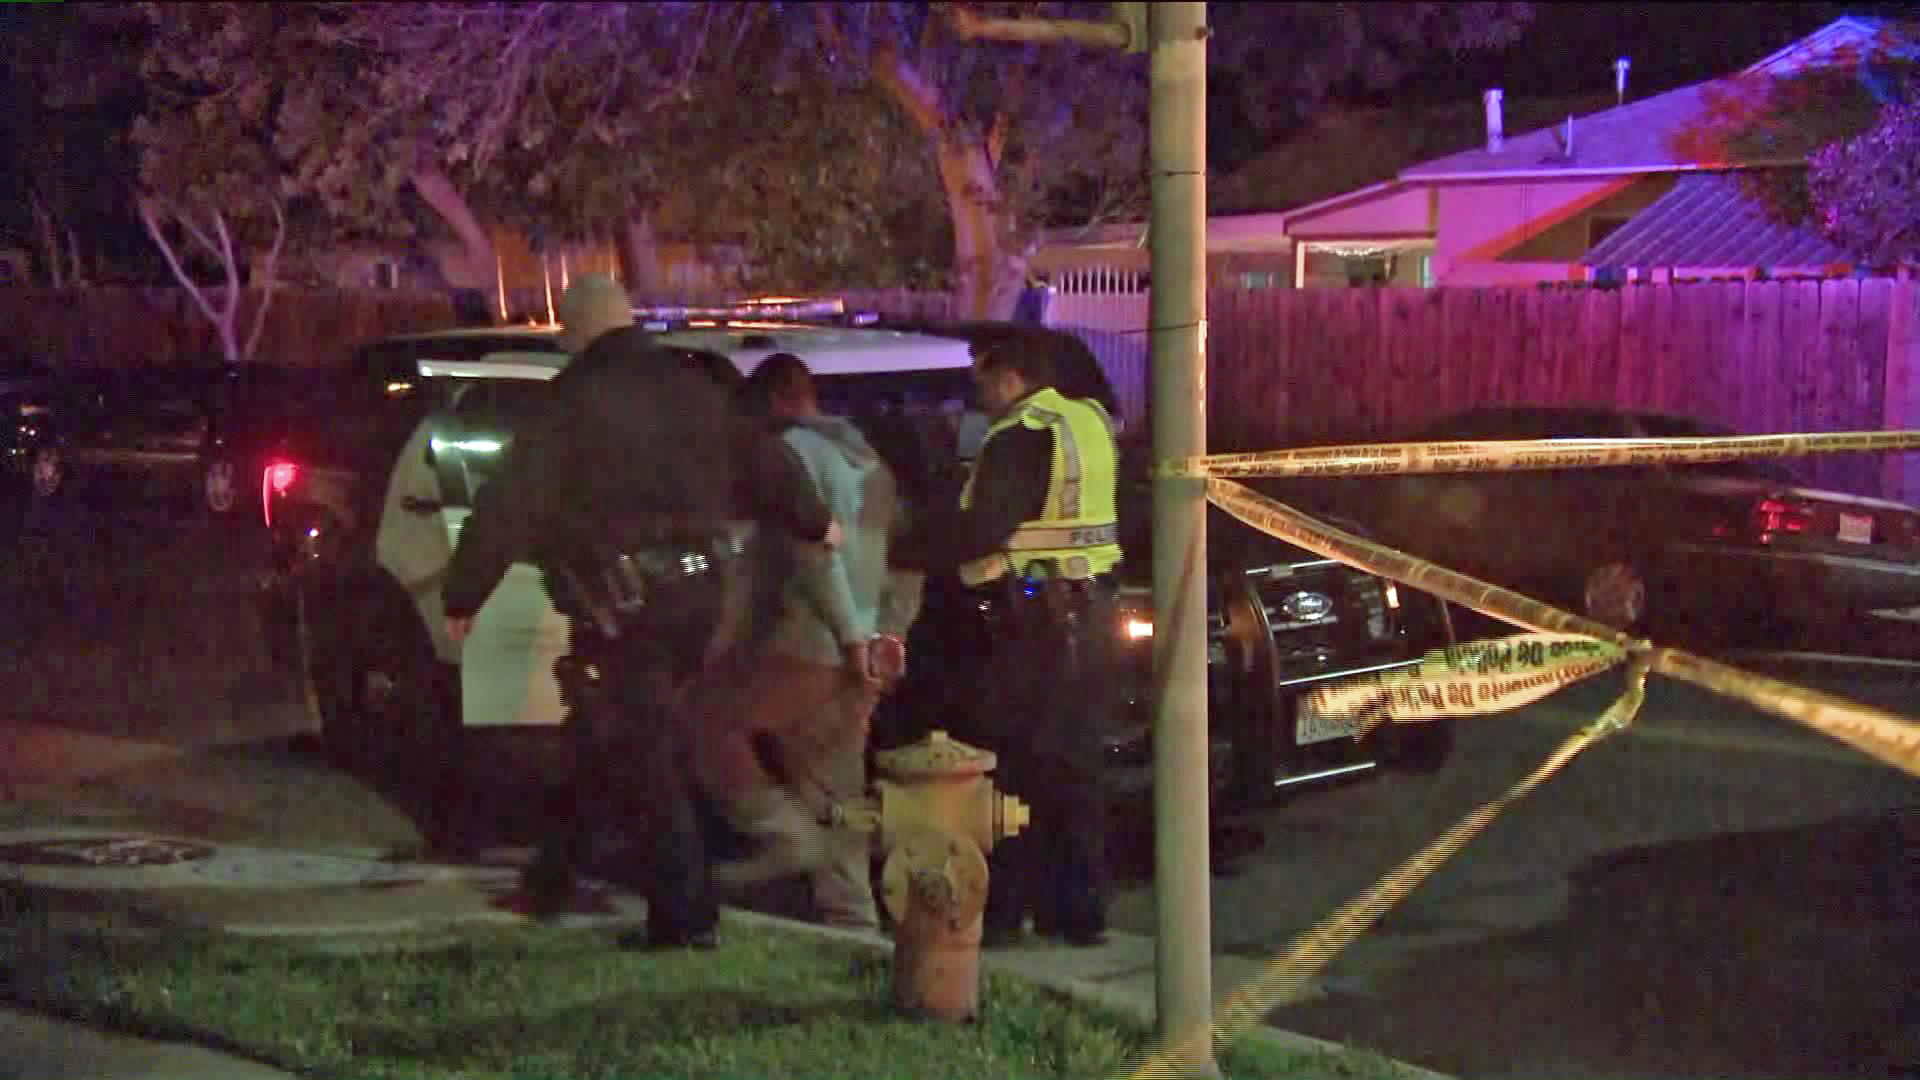 Police take a man into custody in connection with an alleged DUI, hit-and-run crash that left a woman dead in Reseda on March 2, 2020. (Credit: KTLA)